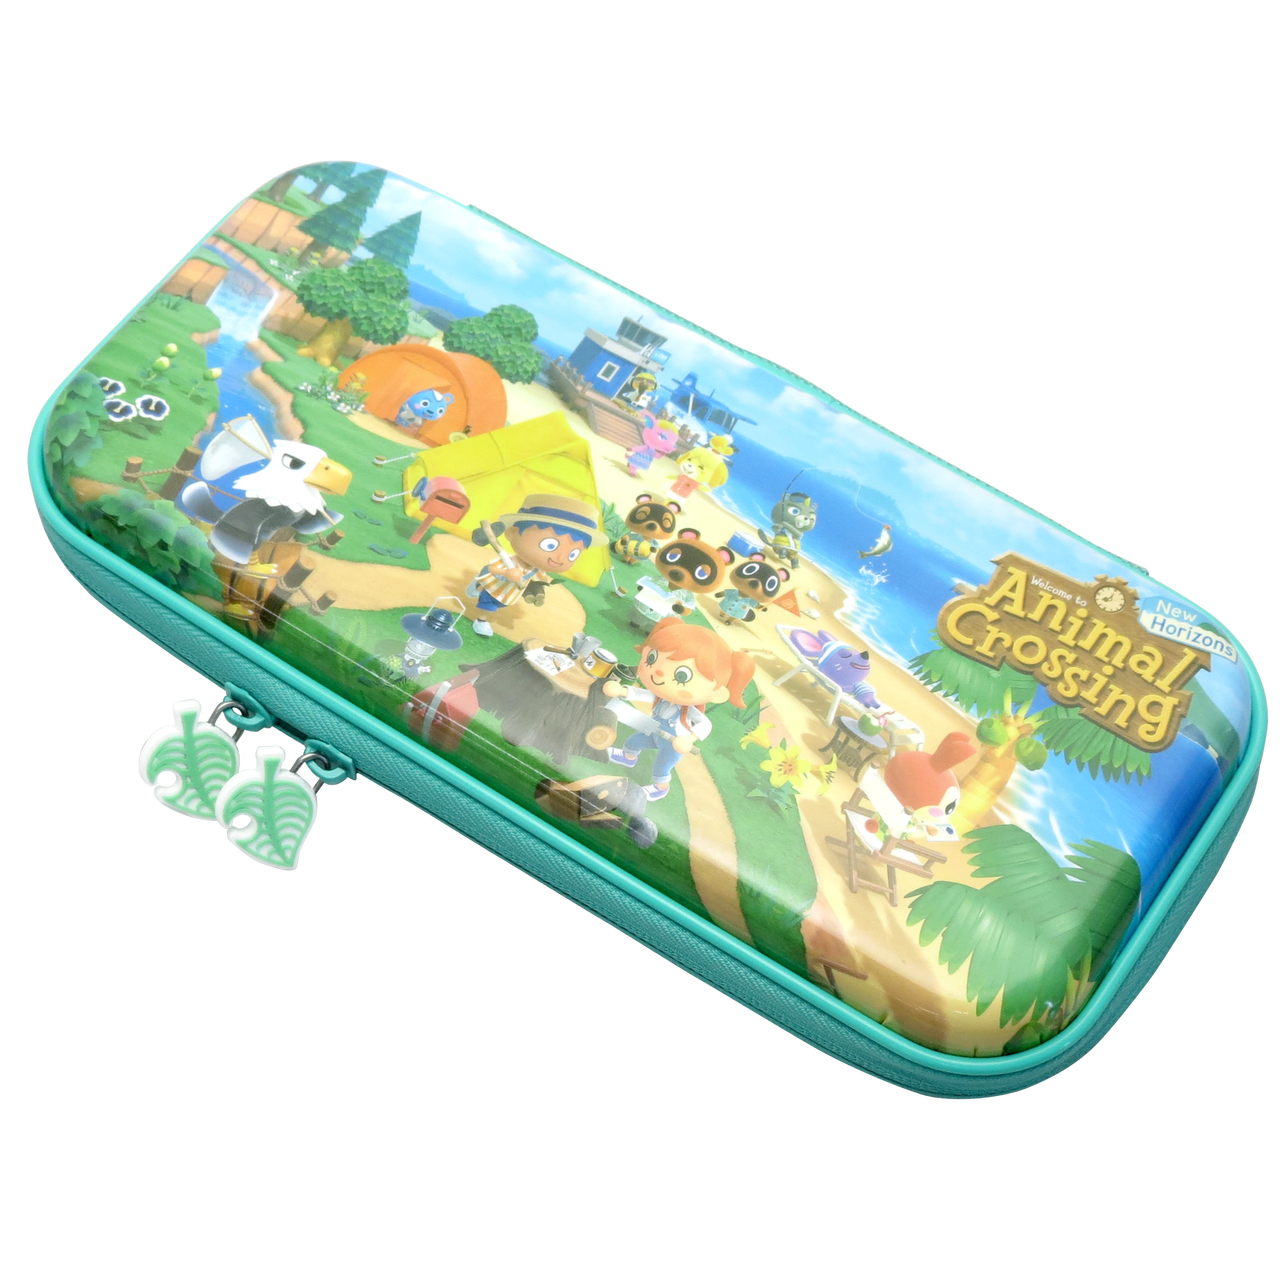 Hori Reveals New Animal Crossing New Horizons Accessories